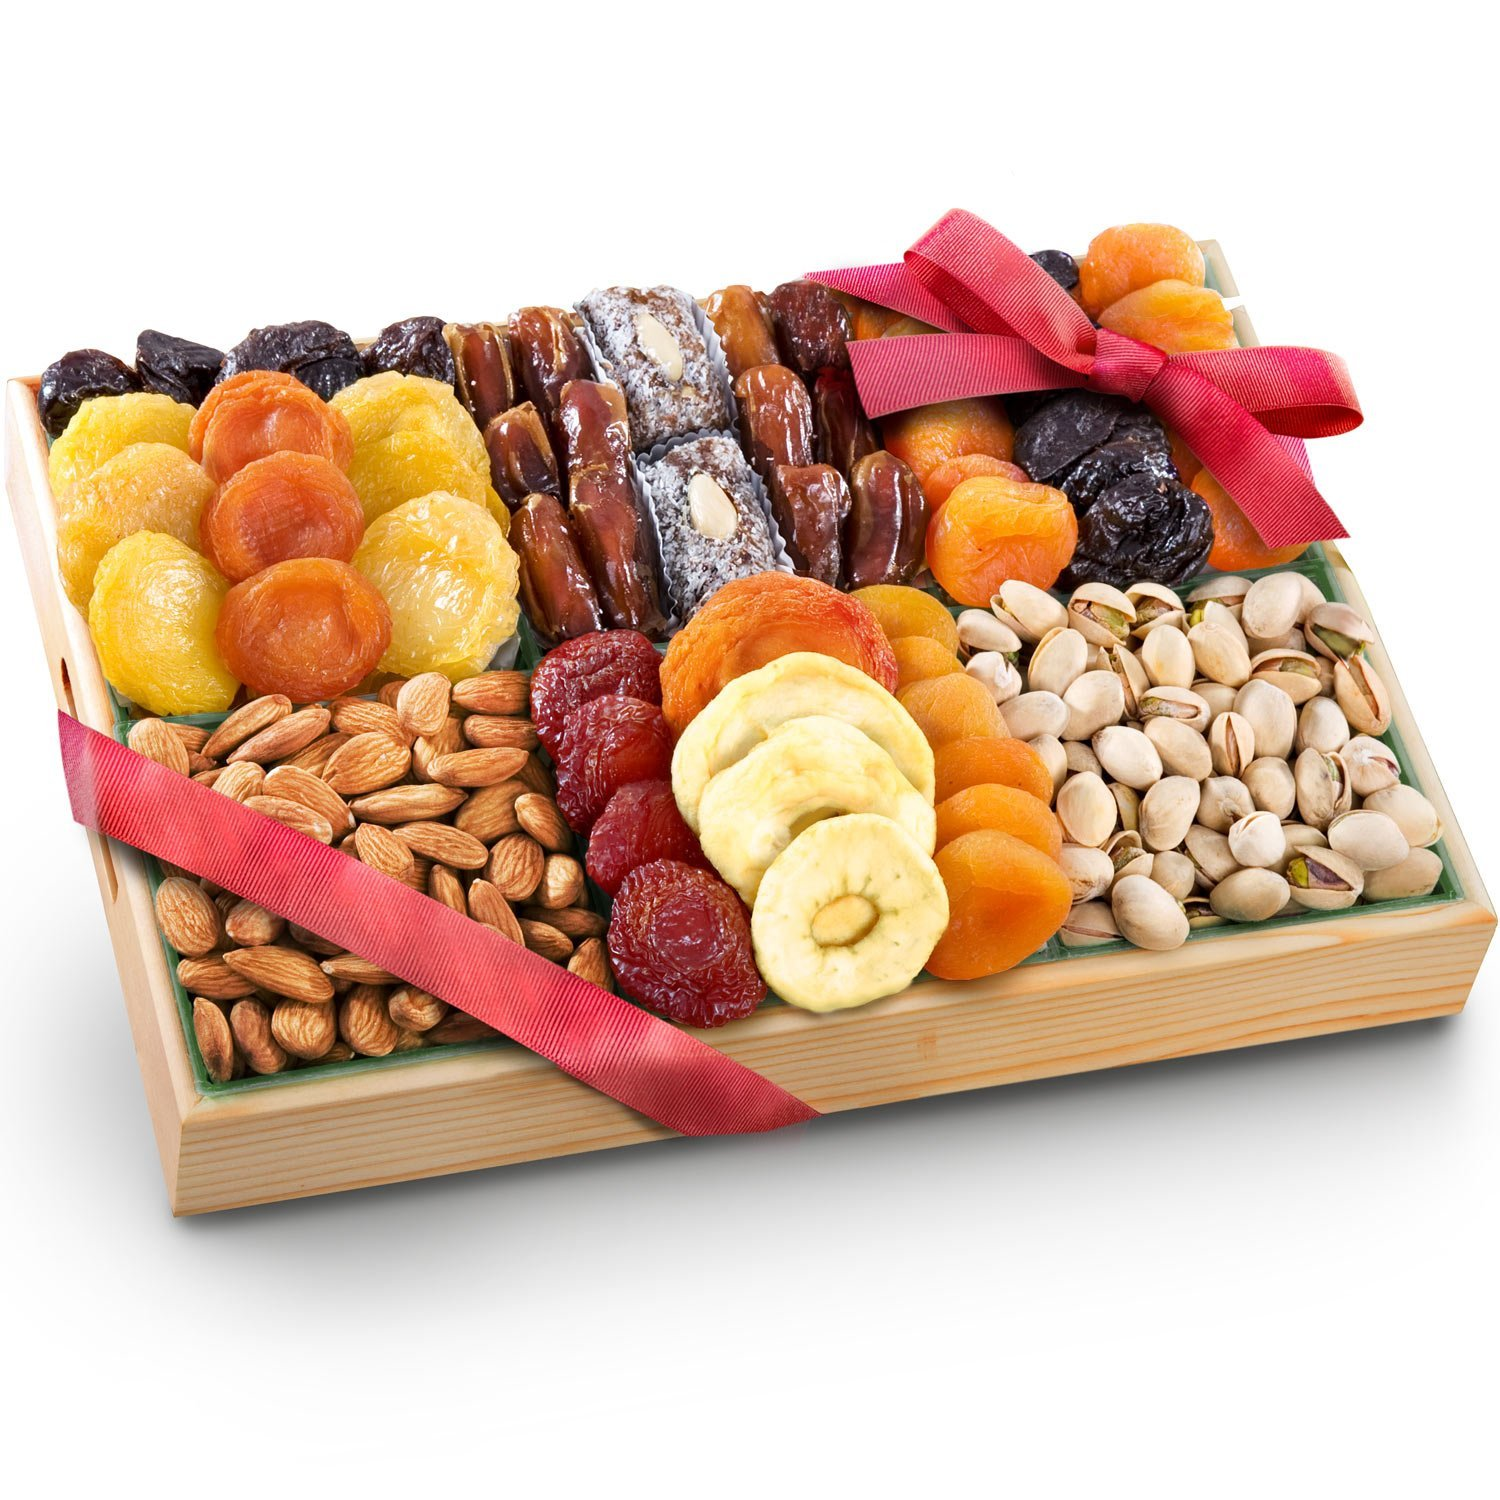 Dried Fruit and Nut Gift Baskets Delicious Fresh Healthy Gourmet Gift Ideas - HELLOFOODS.COM  sc 1 st  HelloFoods & Dried Fruit u0026 Nut Gift Baskets - Best Healthy Gourmet Gifts Delicious